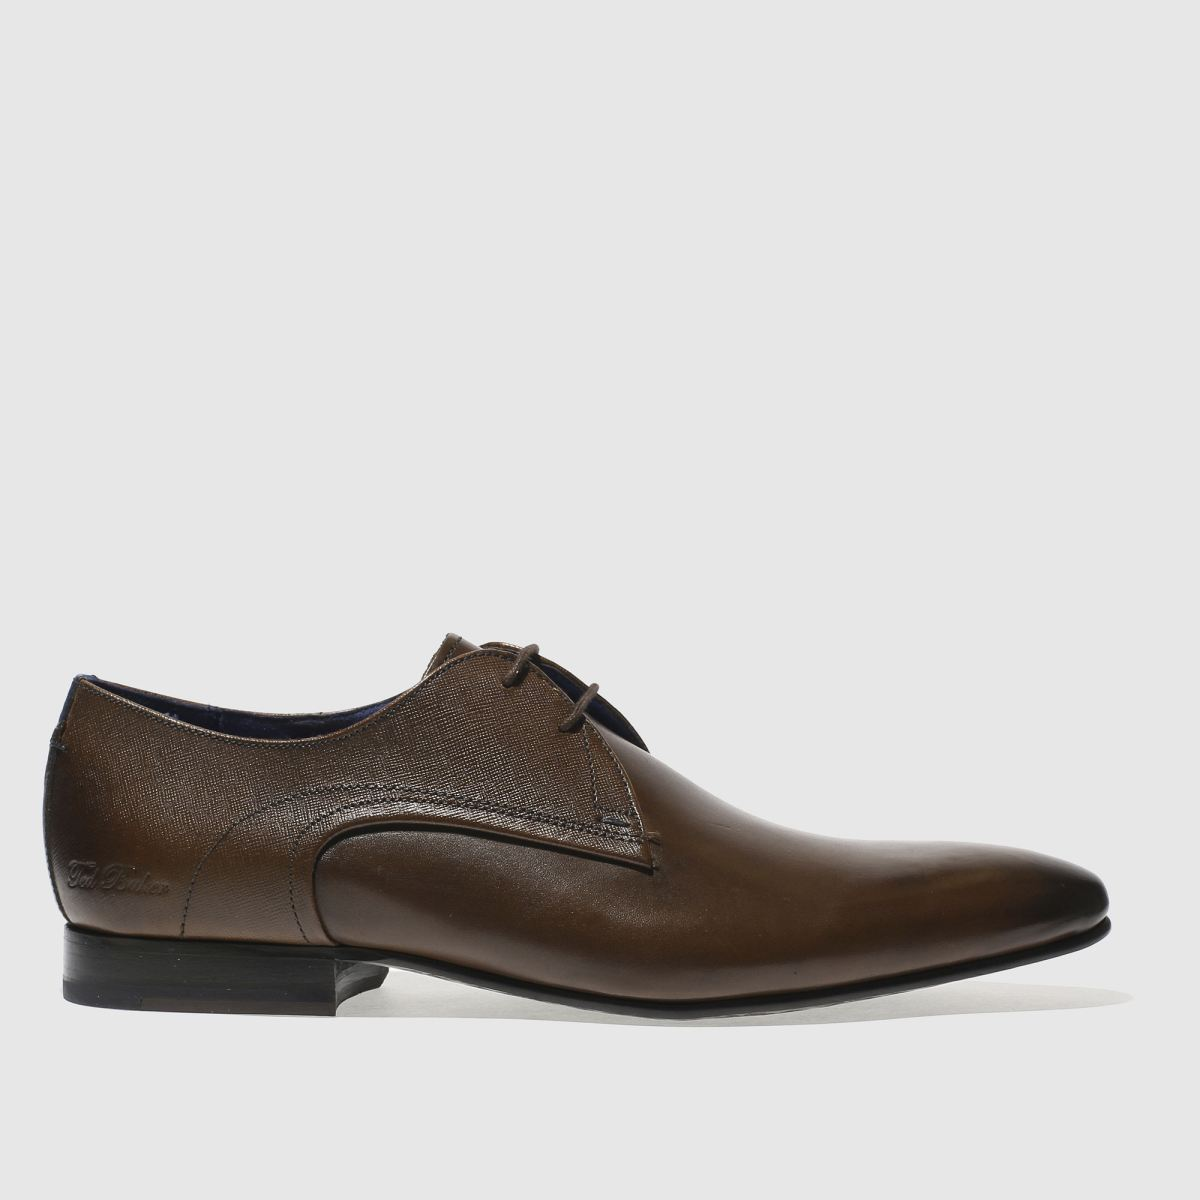 Ted Baker Brown Peair Shoes